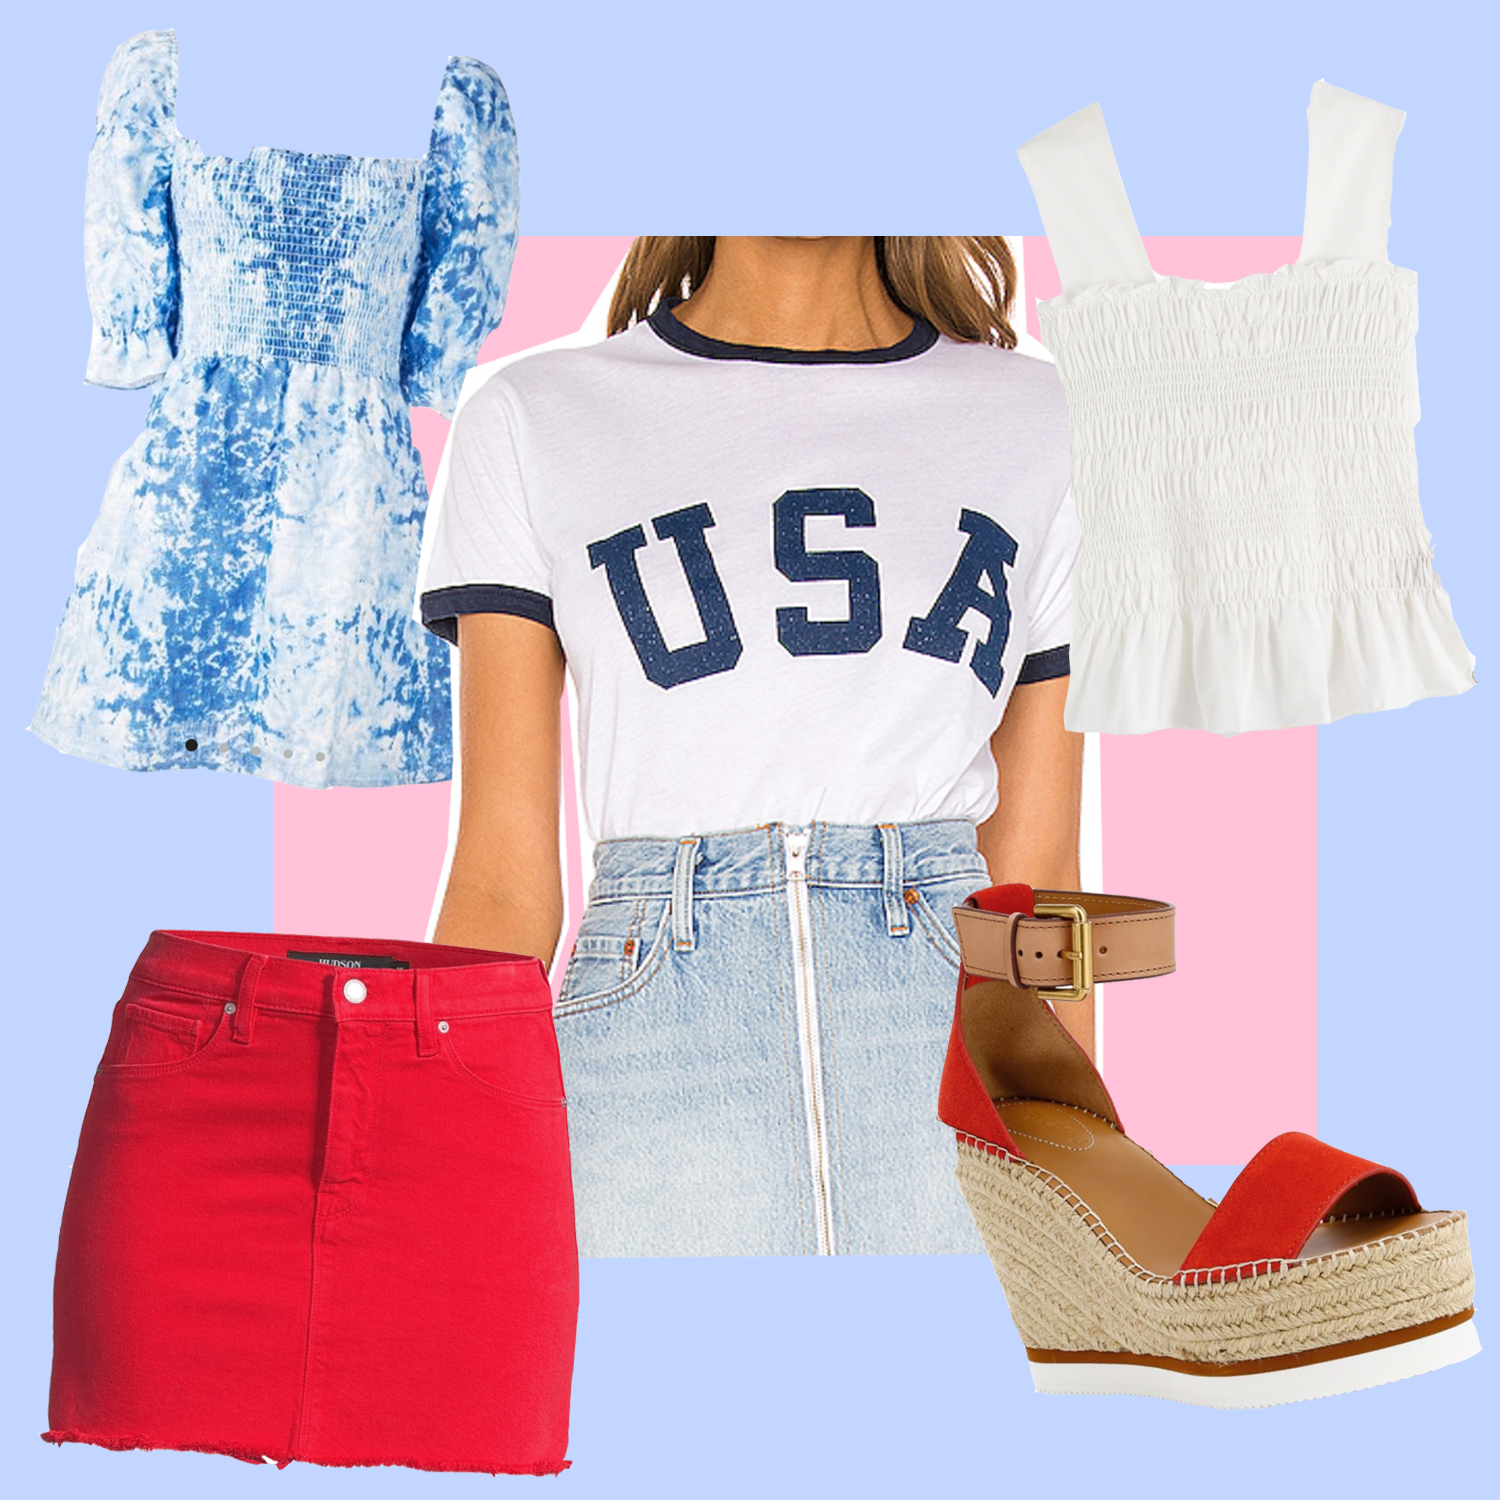 4th of July Fashion & Outfit Ideas